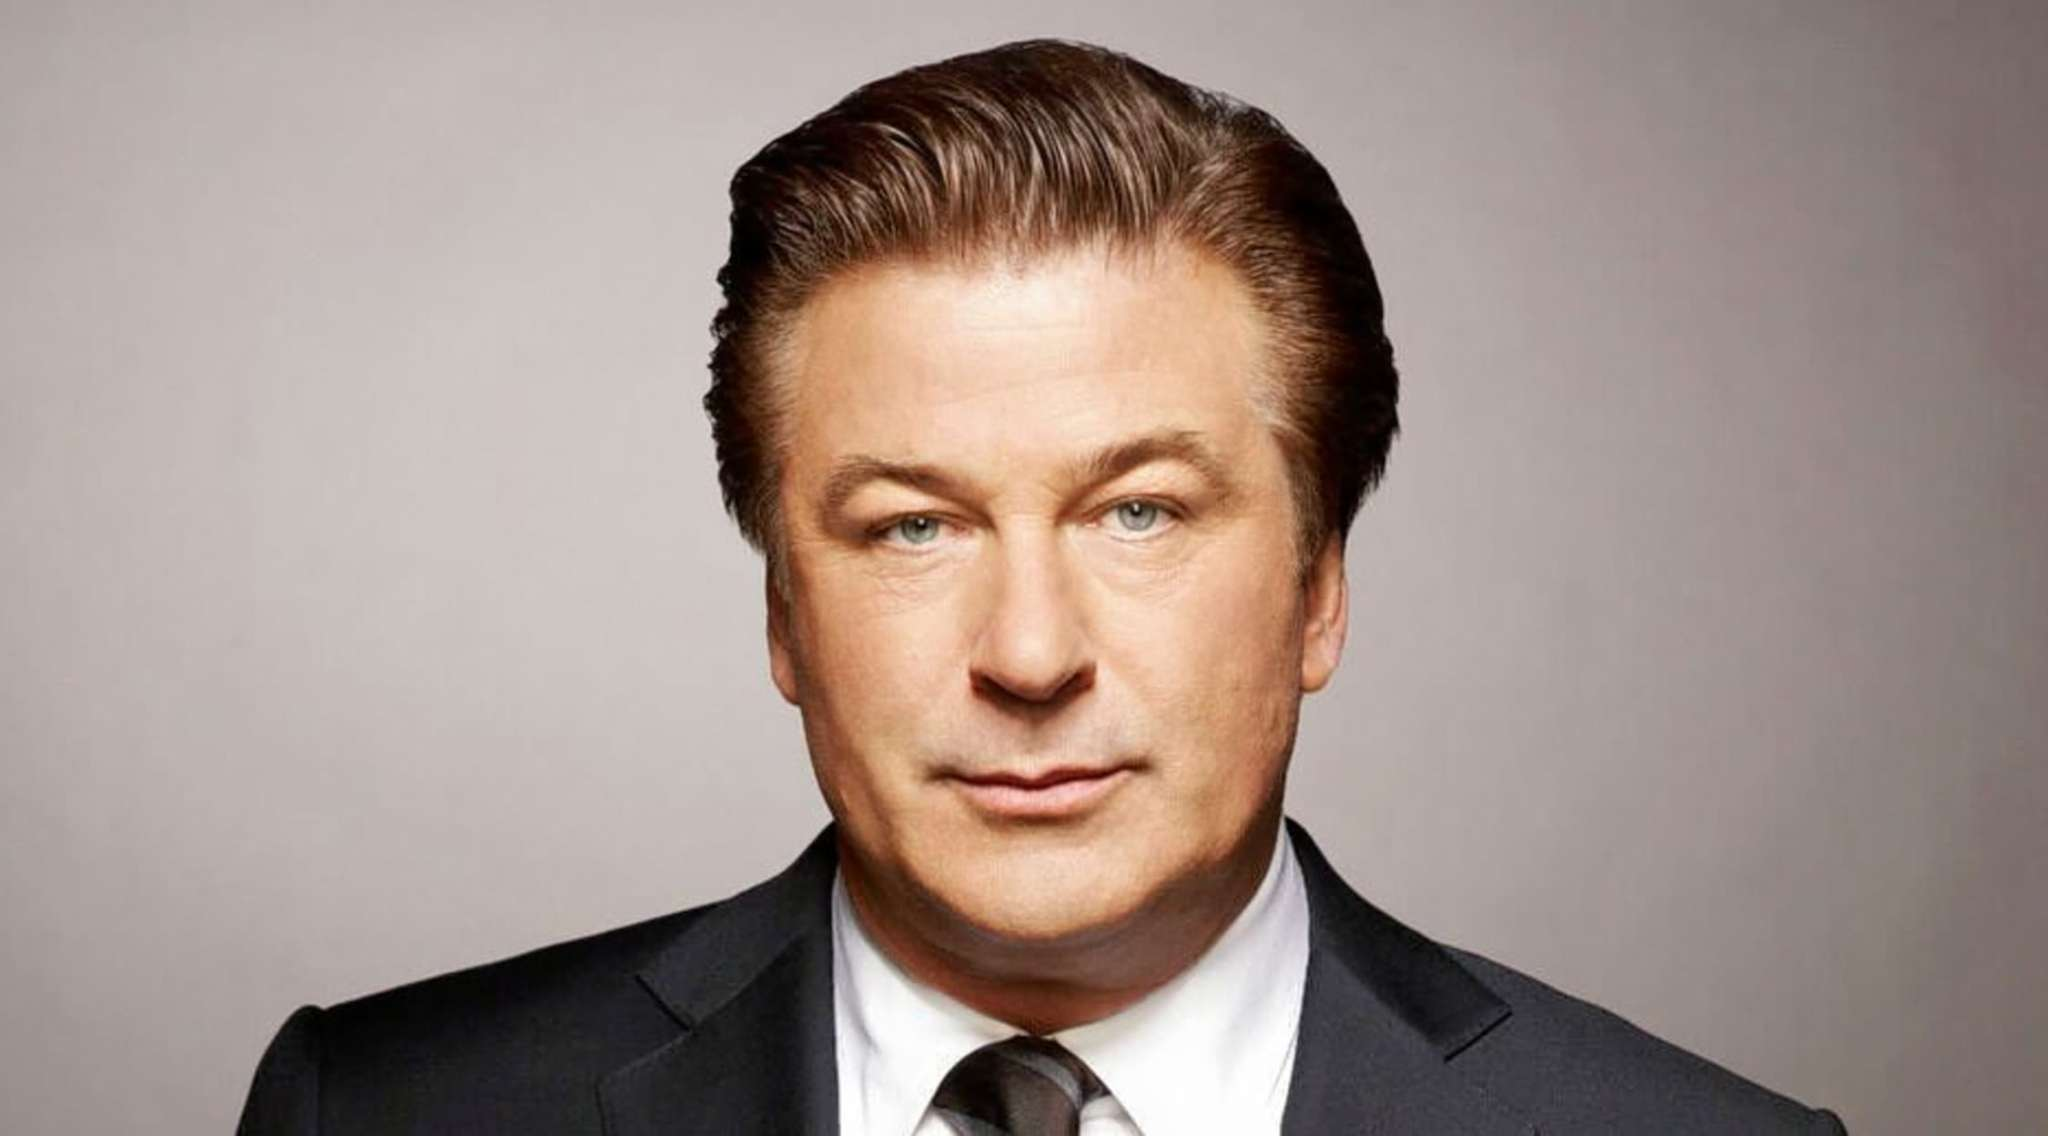 alec-baldwin-slams-cancel-culture-as-a-forest-fire-in-constant-need-of-fuel-after-wife-hilarias-scandal